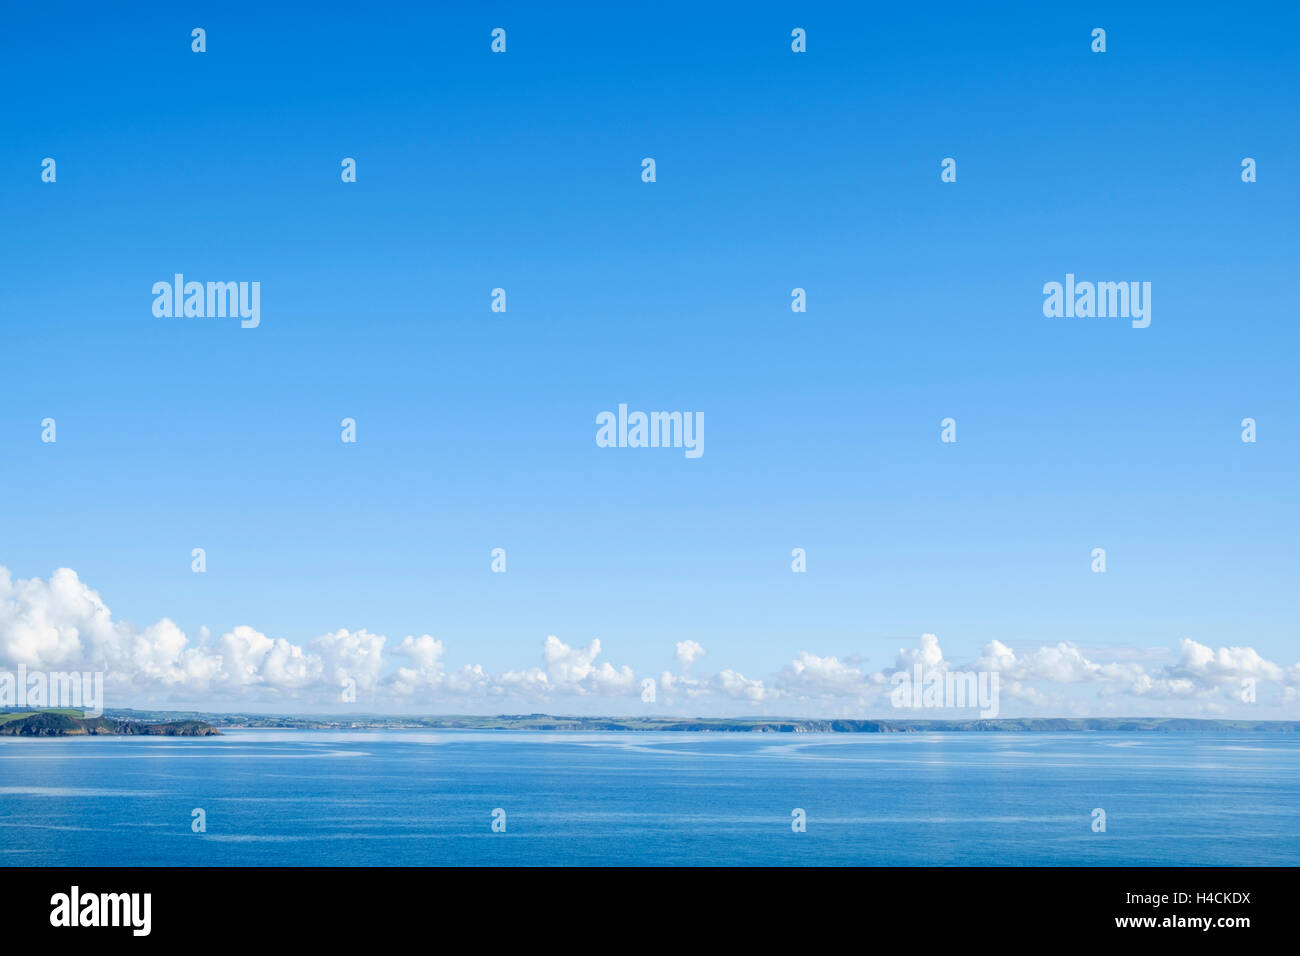 Weather - Blue sky with Cumulus clouds forming over a coastline, UK - Stock Image